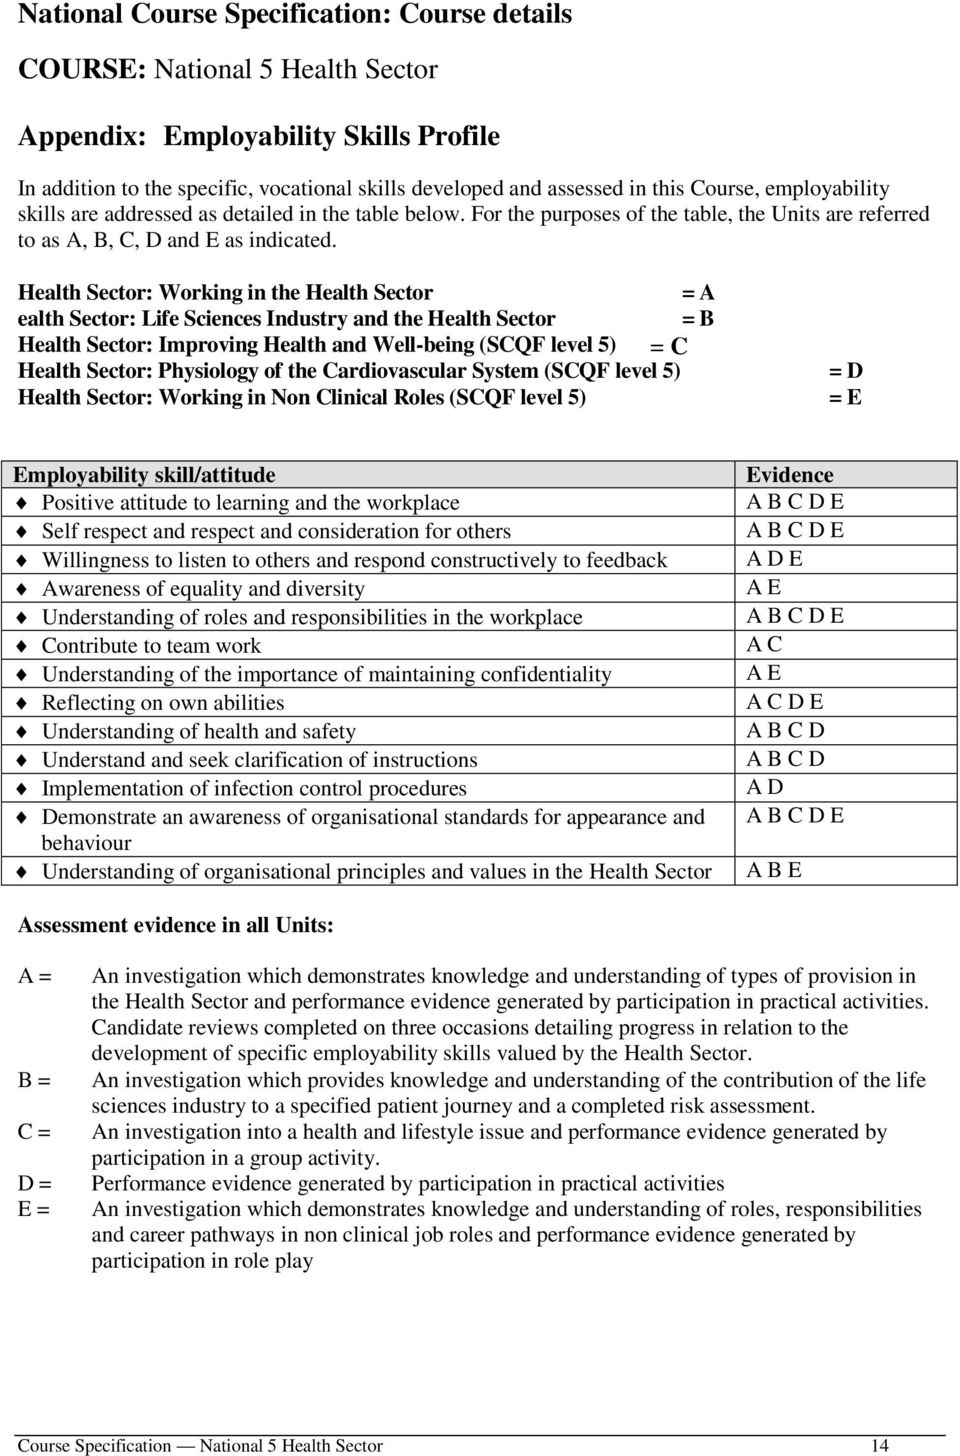 Health Sector: Working in the Health Sector = A ealth Sector: Life Sciences Industry and the Health Sector = B Health Sector: Improving Health and Well-being (SCQF level 5) = C = Health Sector: